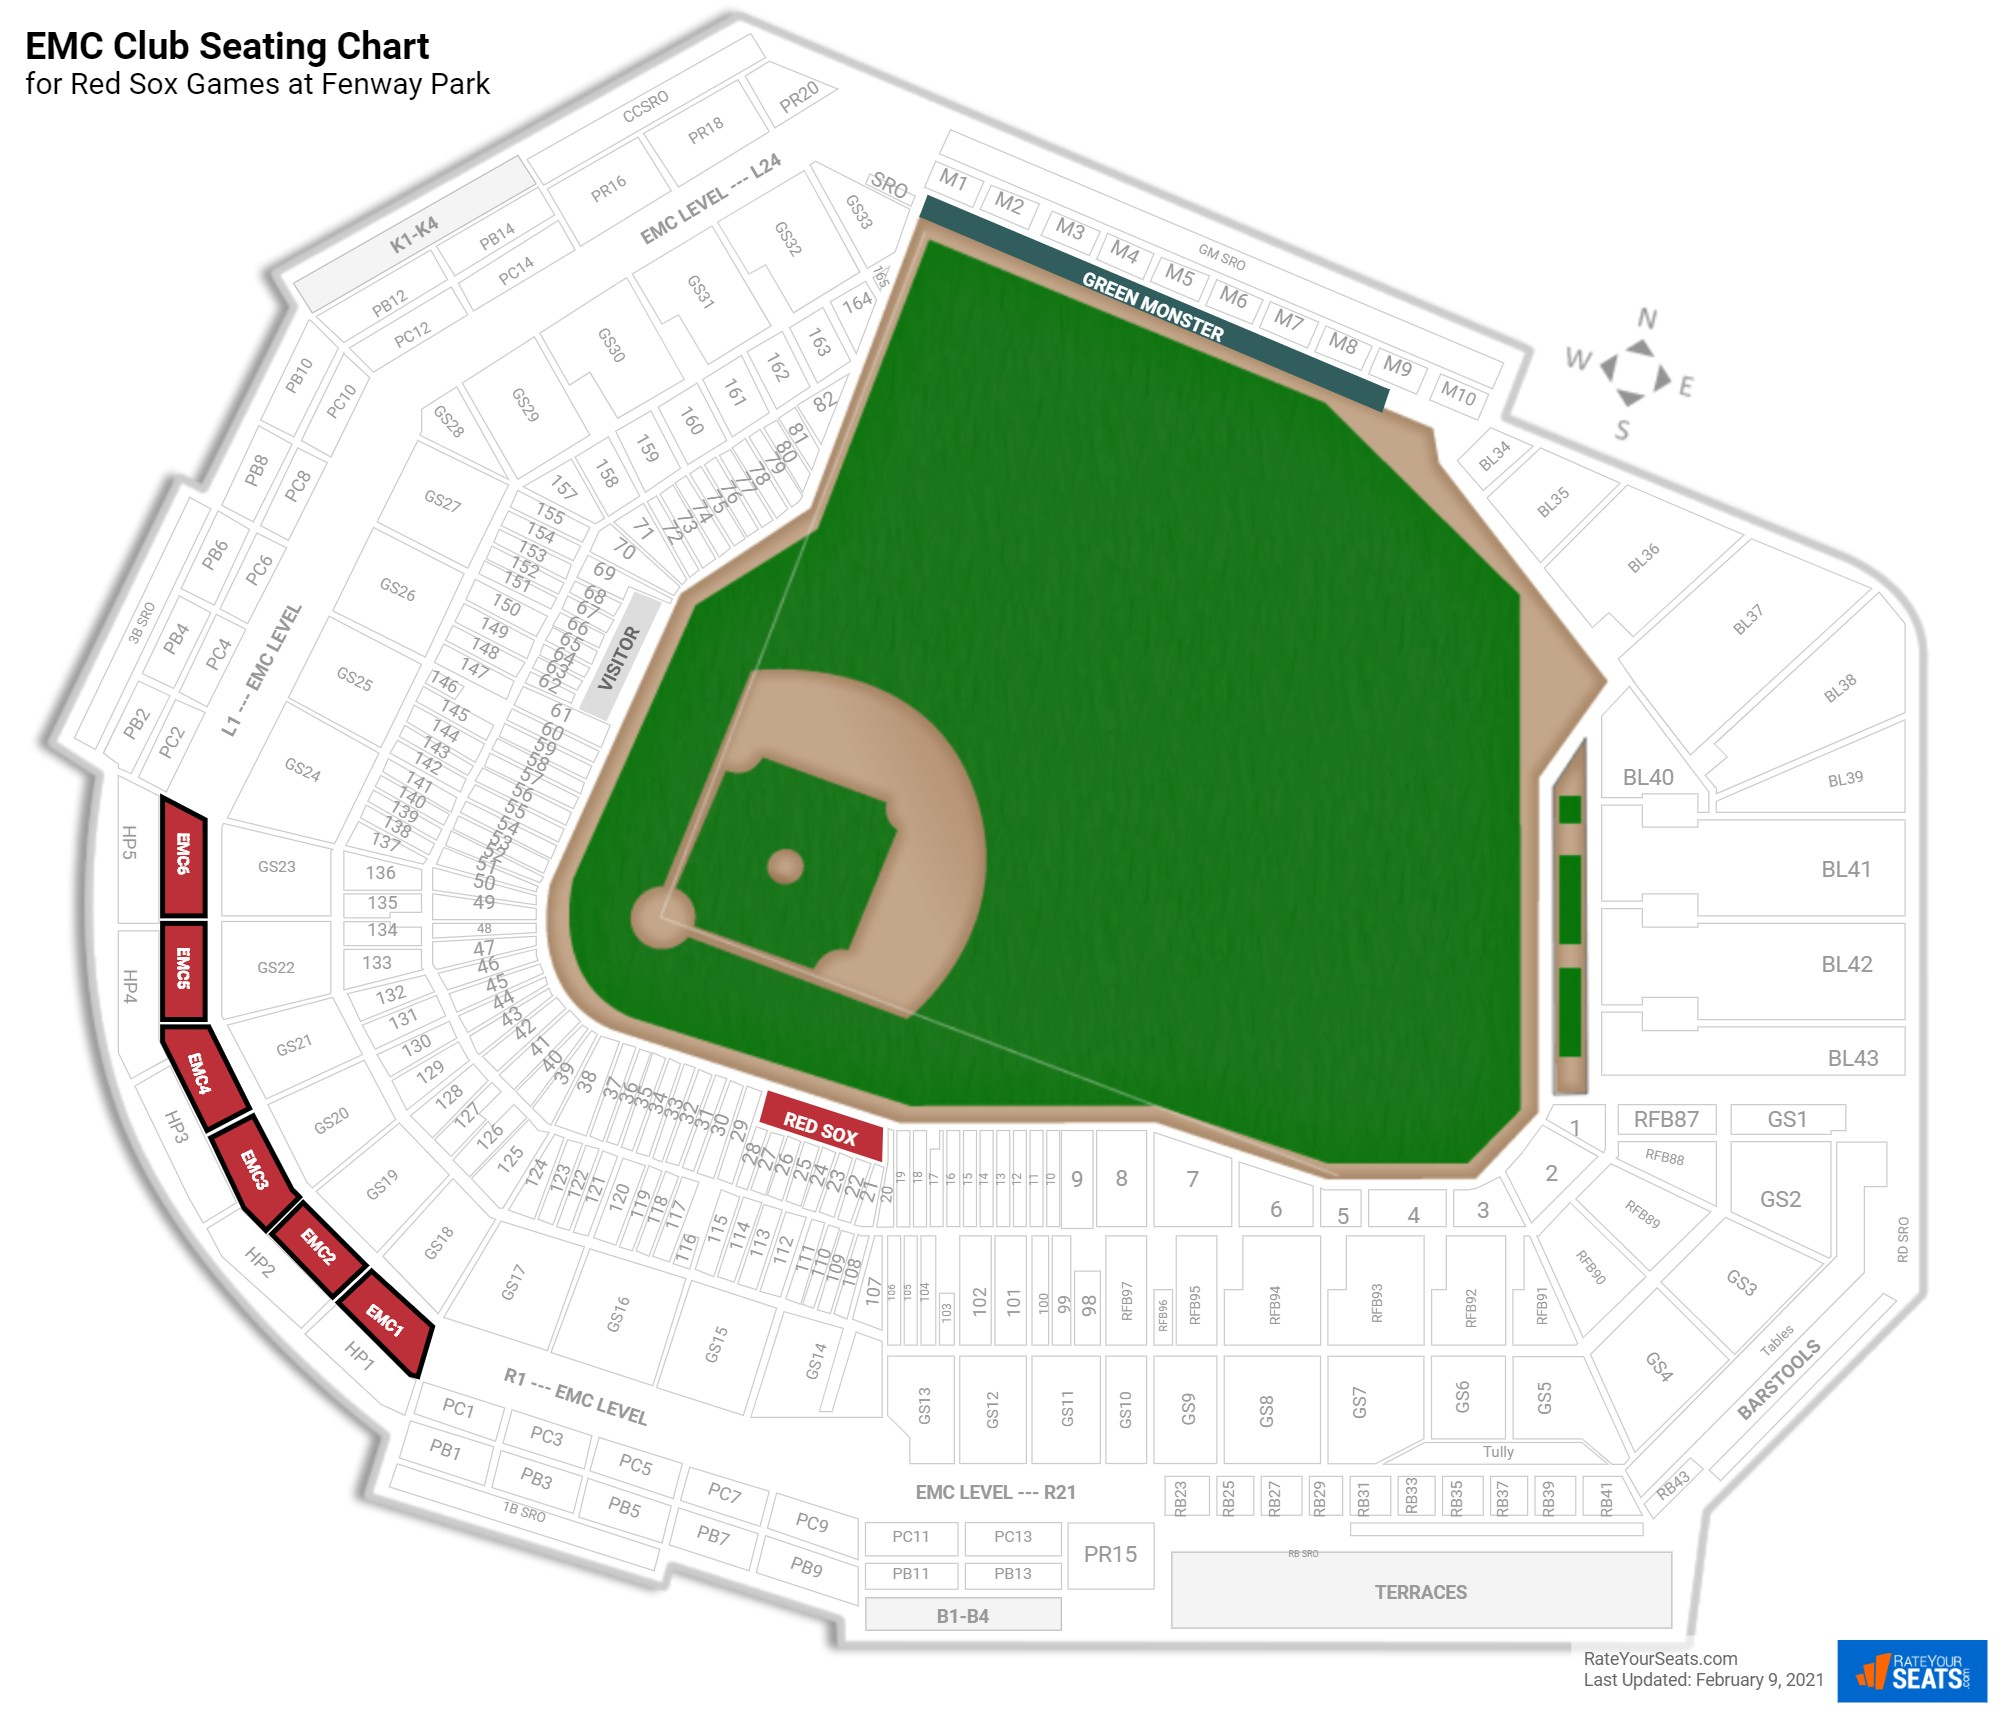 Fenway Park EMC Club seating chart